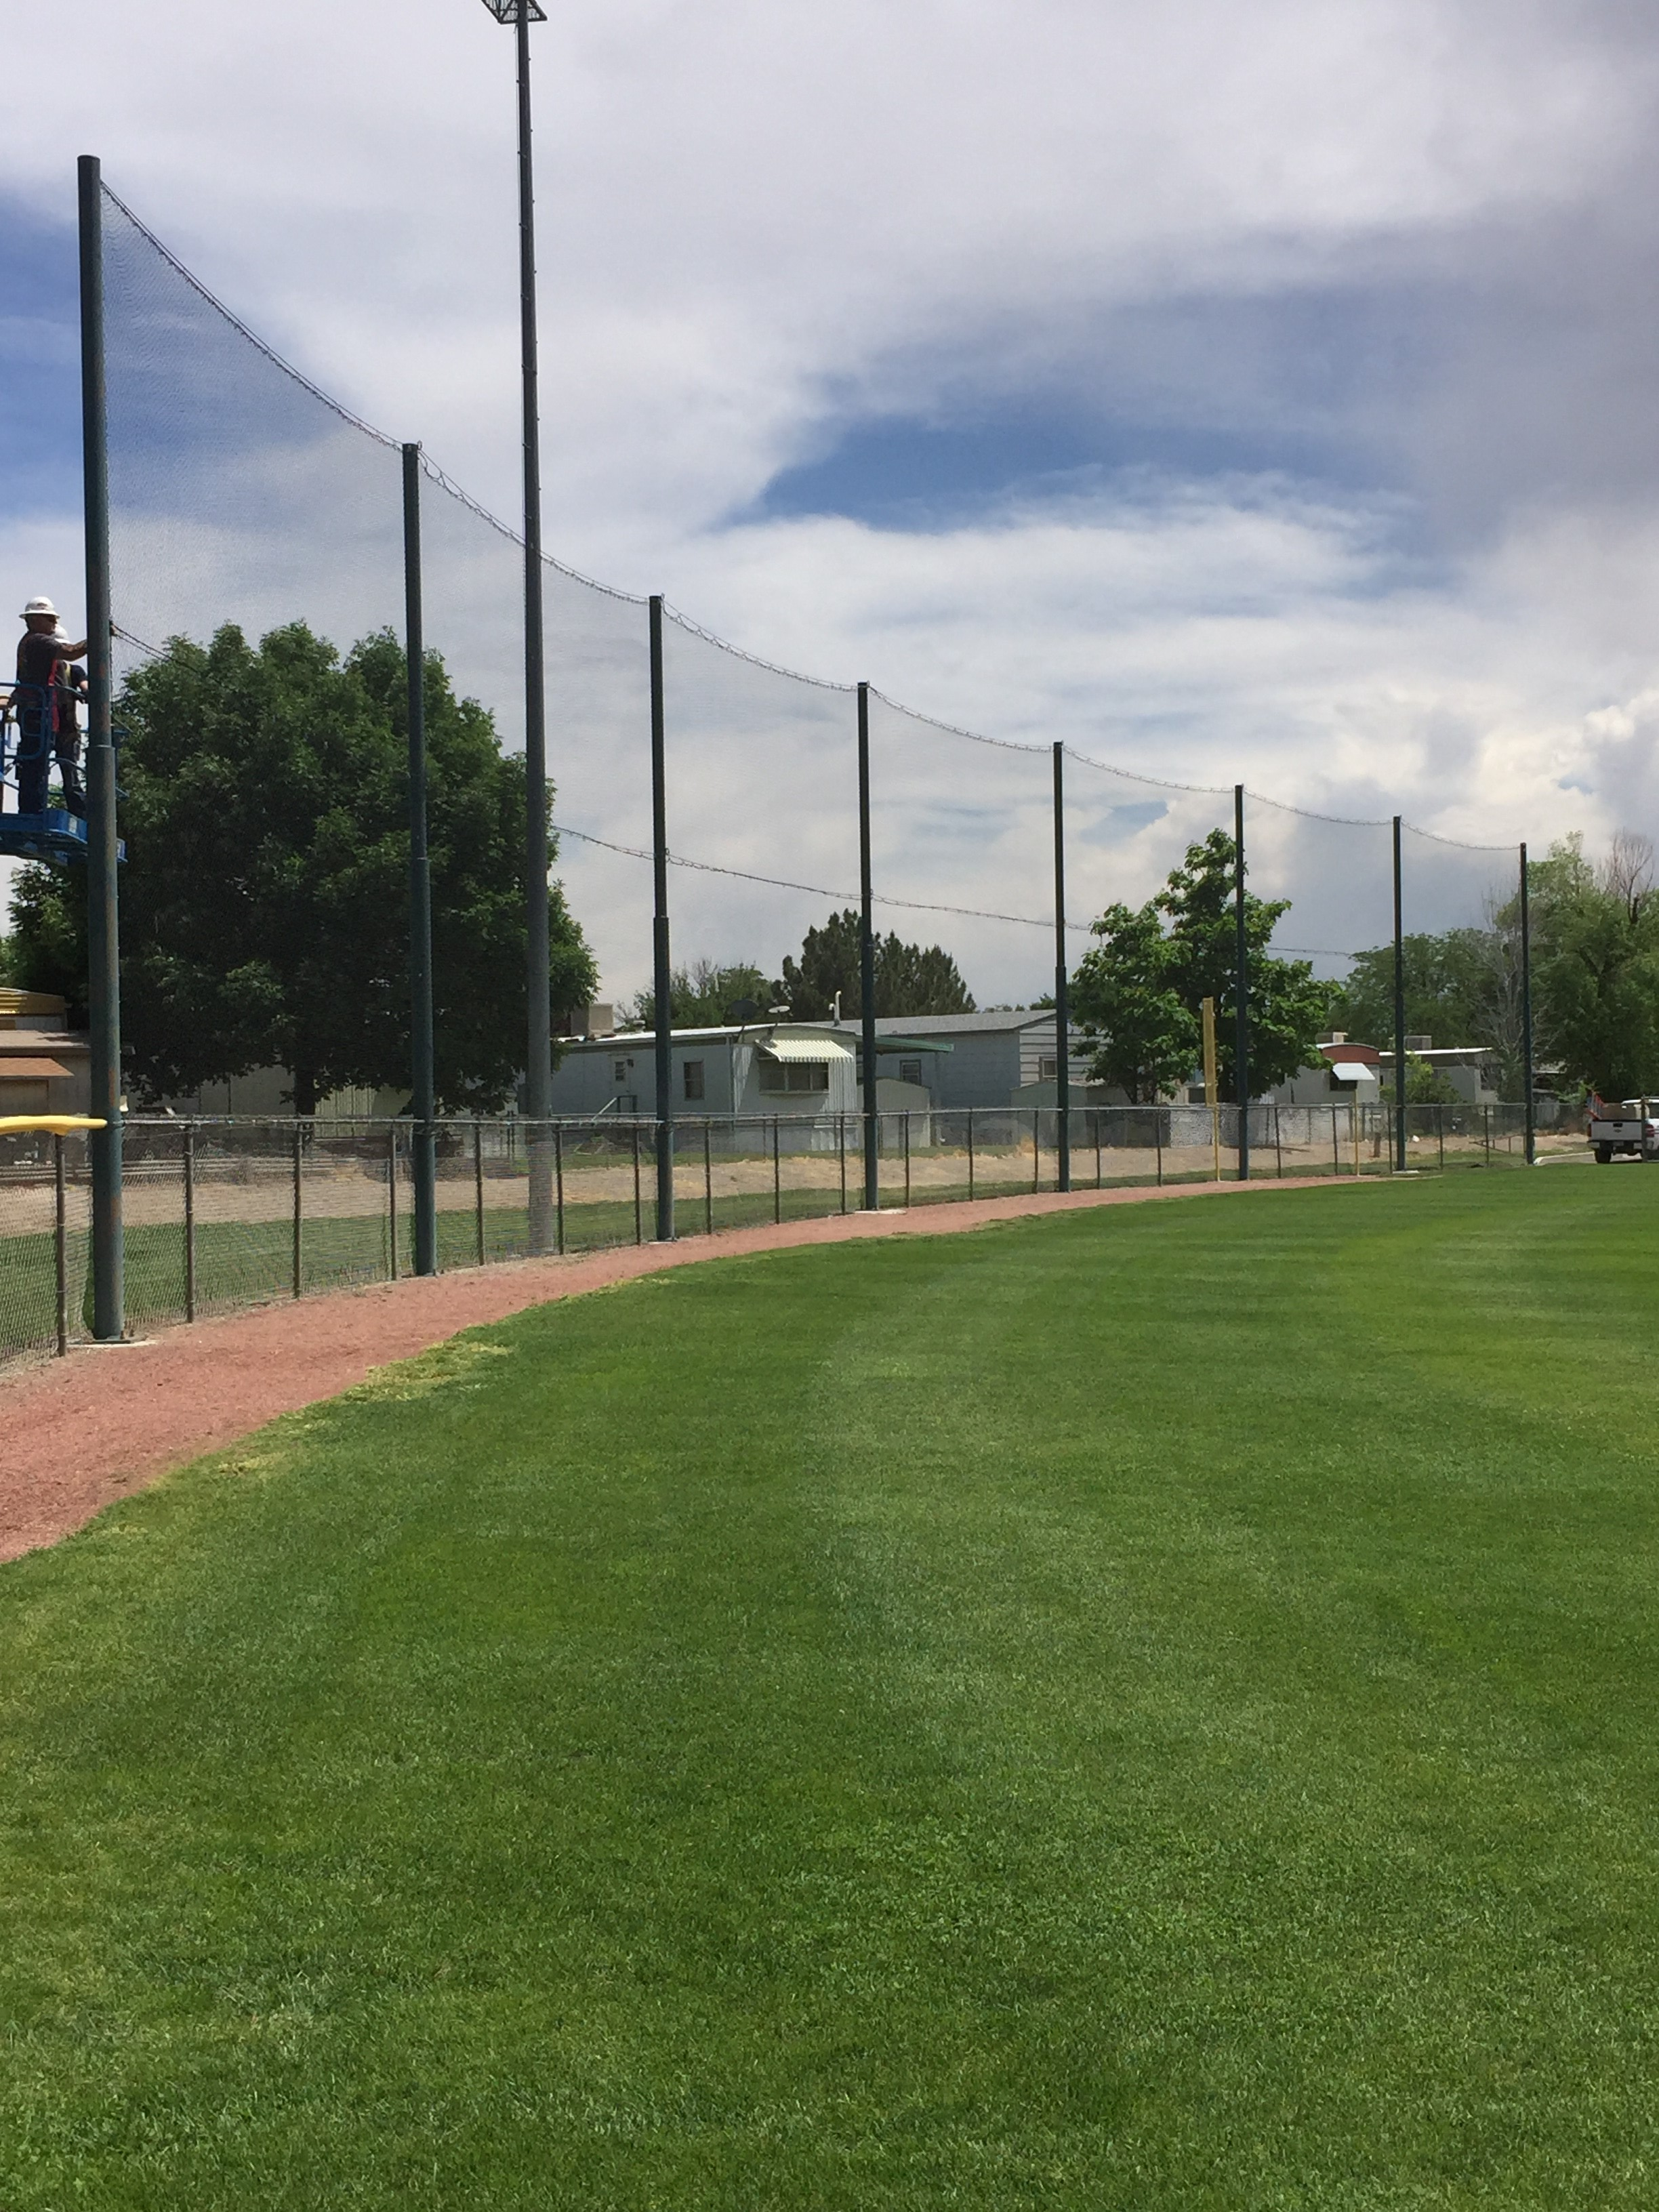 Protective Netting at City Ballpark